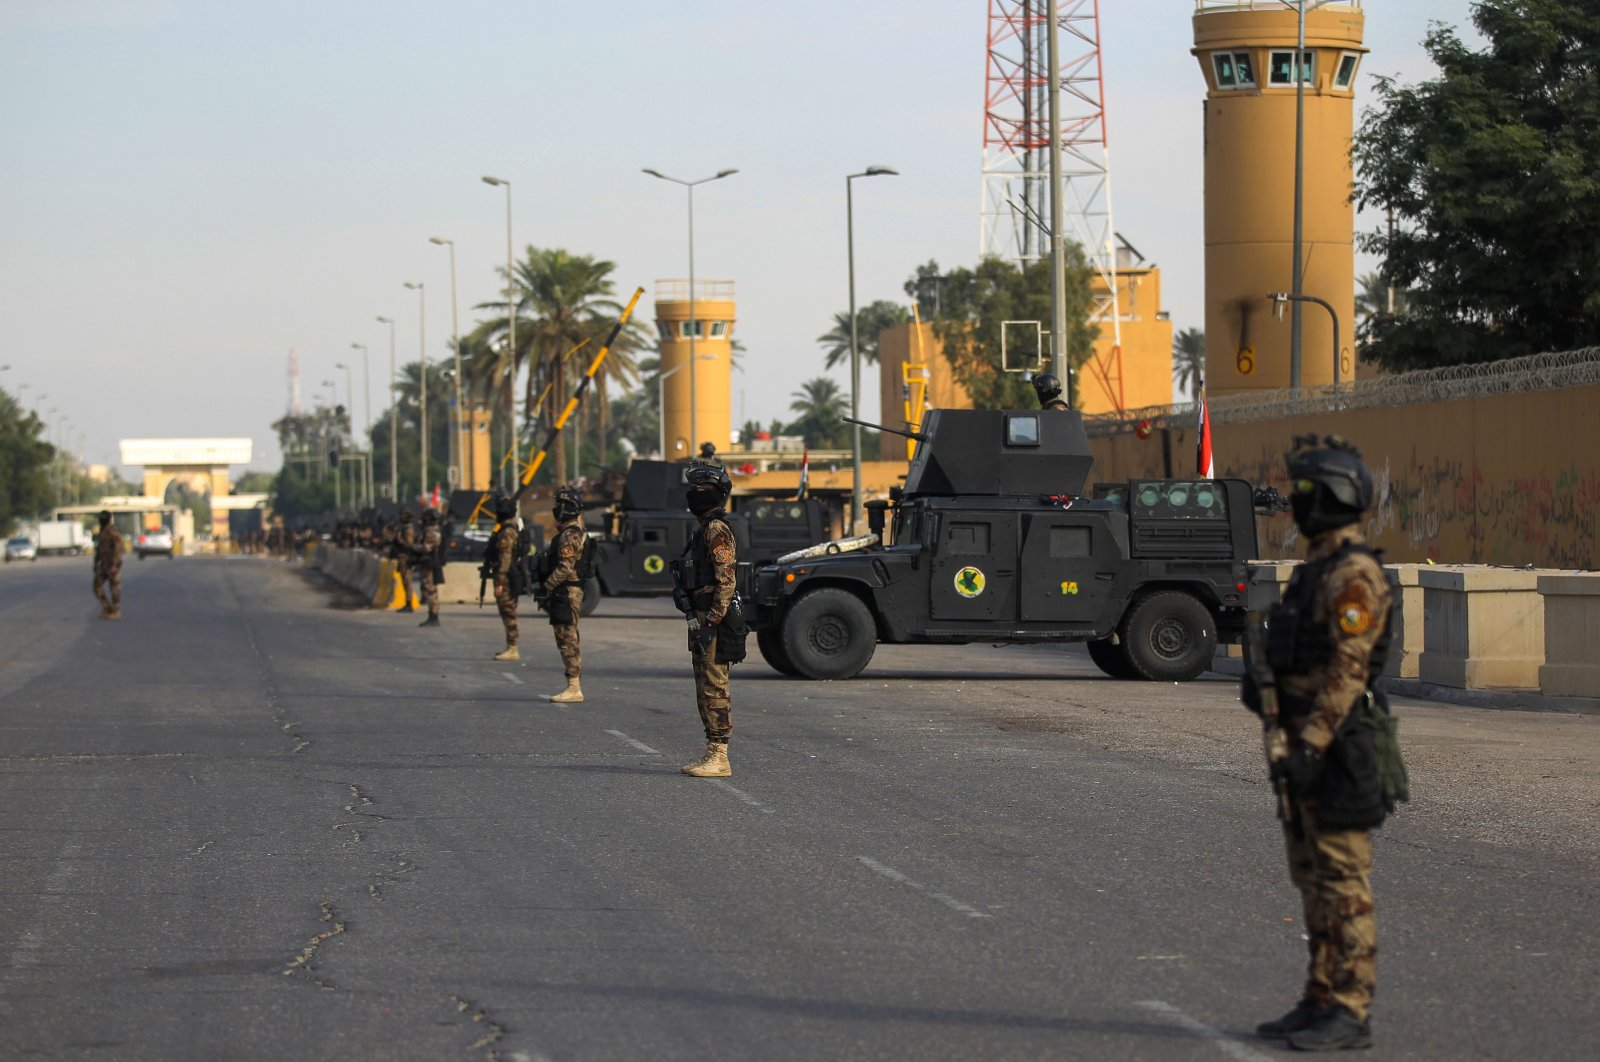 Iraqi counterterrorism forces stand guard in front of the U.S. Embassy in Baghdad, Jan. 2, 2020. (AFP Photo)